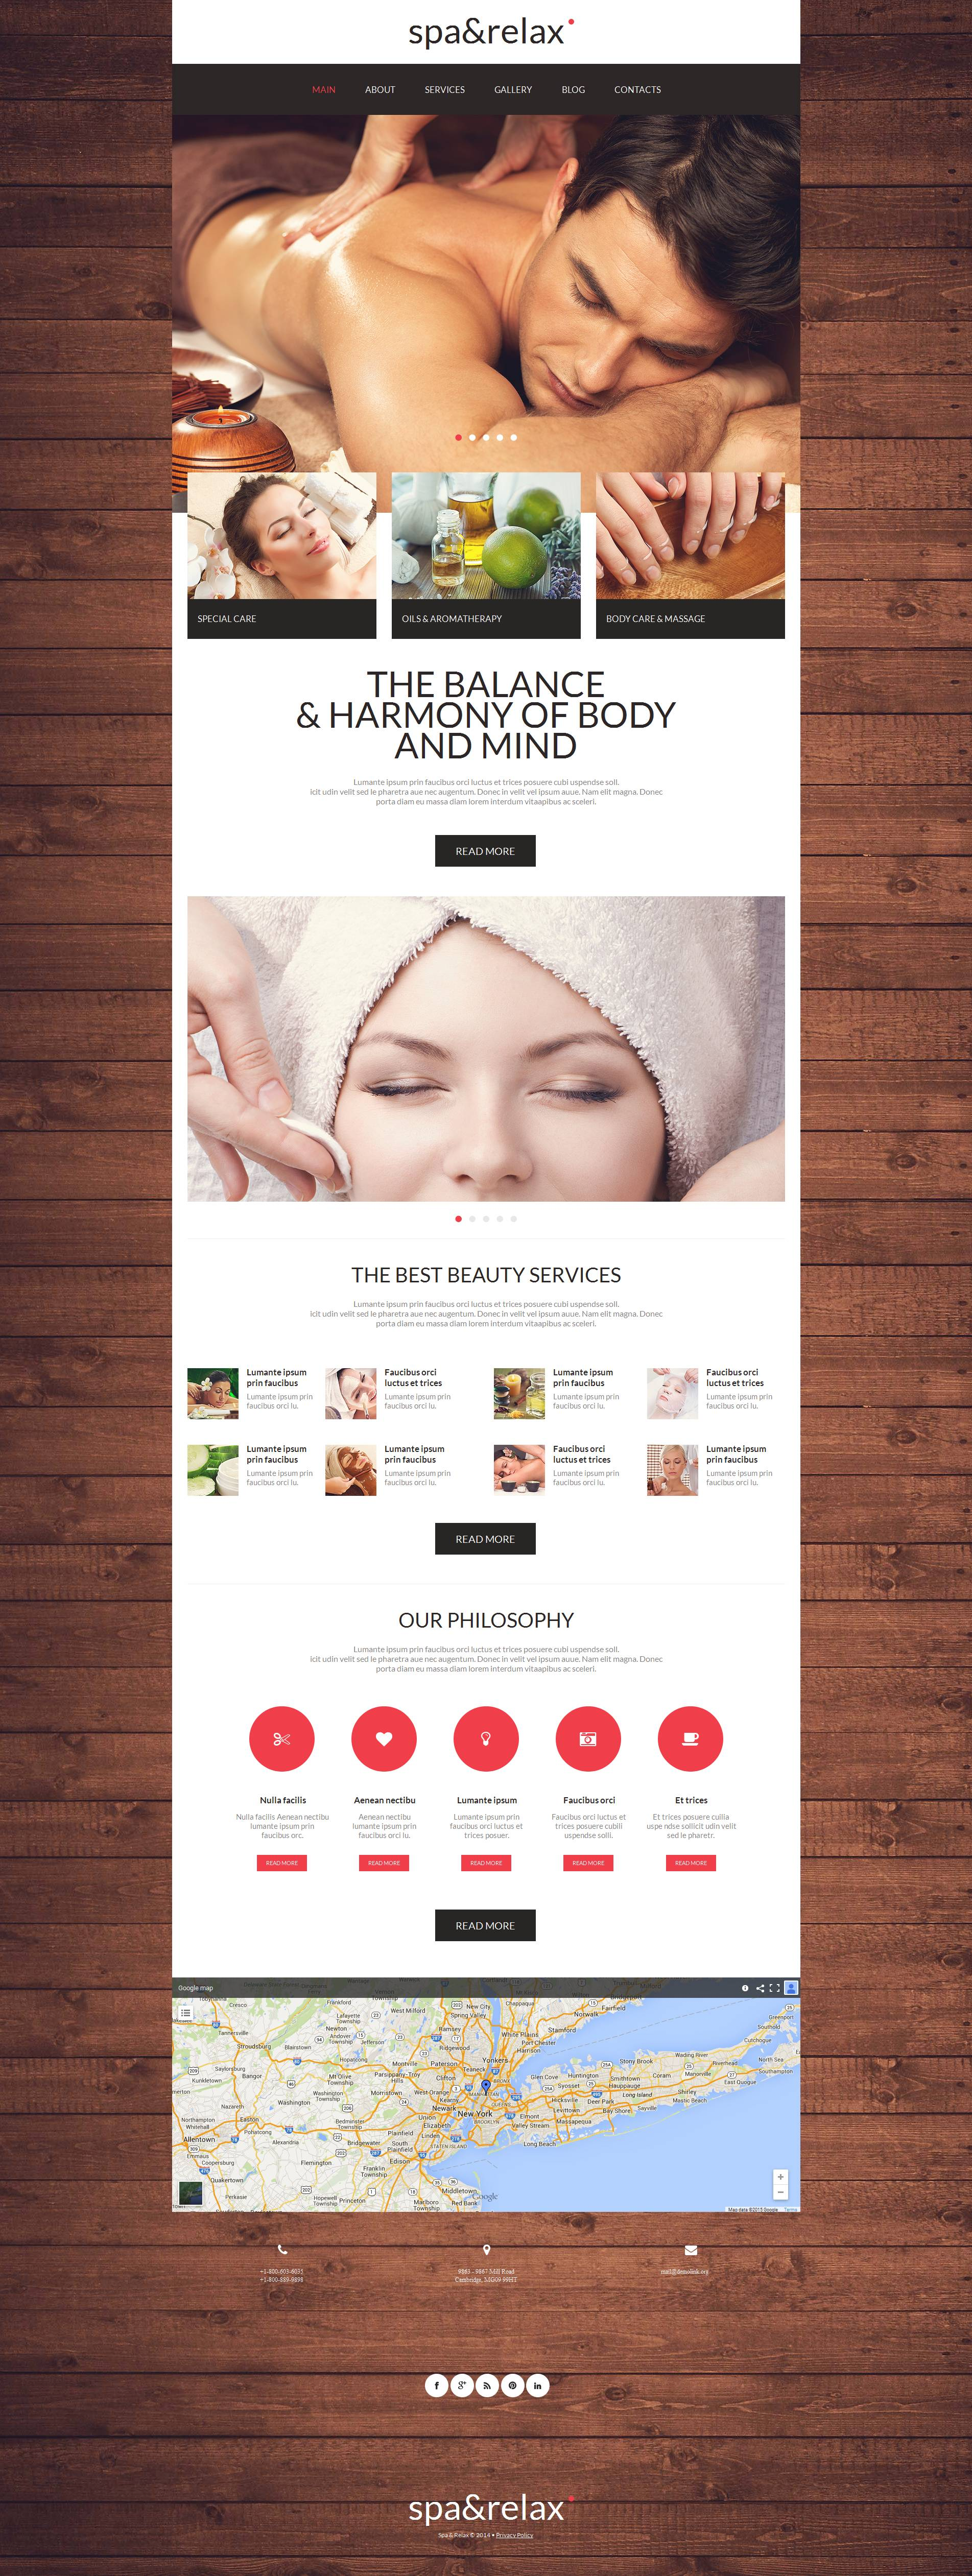 The Spa Salon Beauty Moto CMS HTML Design 53212, one of the best Moto CMS HTML templates of its kind (beauty, most popular), also known as Spa salon beauty Moto CMS HTML template, cosmetic Moto CMS HTML template, weight loss Moto CMS HTML template, massage Moto CMS HTML template, facial Moto CMS HTML template, body Moto CMS HTML template, style Moto CMS HTML template, product Moto CMS HTML template, staff Moto CMS HTML template, professional Moto CMS HTML template, decorative Moto CMS HTML template, foundation Moto CMS HTML template, cream care Moto CMS HTML template, lipstick Moto CMS HTML template, mascara Moto CMS HTML template, powder Moto CMS HTML template, rouge Moto CMS HTML template, skin Moto CMS HTML template, perfume Moto CMS HTML template, makeup Moto CMS HTML template, education Moto CMS HTML template, consultation Moto CMS HTML template, research Moto CMS HTML template, technology Moto CMS HTML template, special offer Moto CMS HTML template, fashion Moto CMS HTML template, hydrother and related with Spa salon beauty, cosmetic, weight loss, massage, facial, body, style, product, staff, professional, decorative, foundation, cream care, lipstick, mascara, powder, rouge, skin, perfume, makeup, education, consultation, research, technology, special offer, fashion, hydrother, etc.